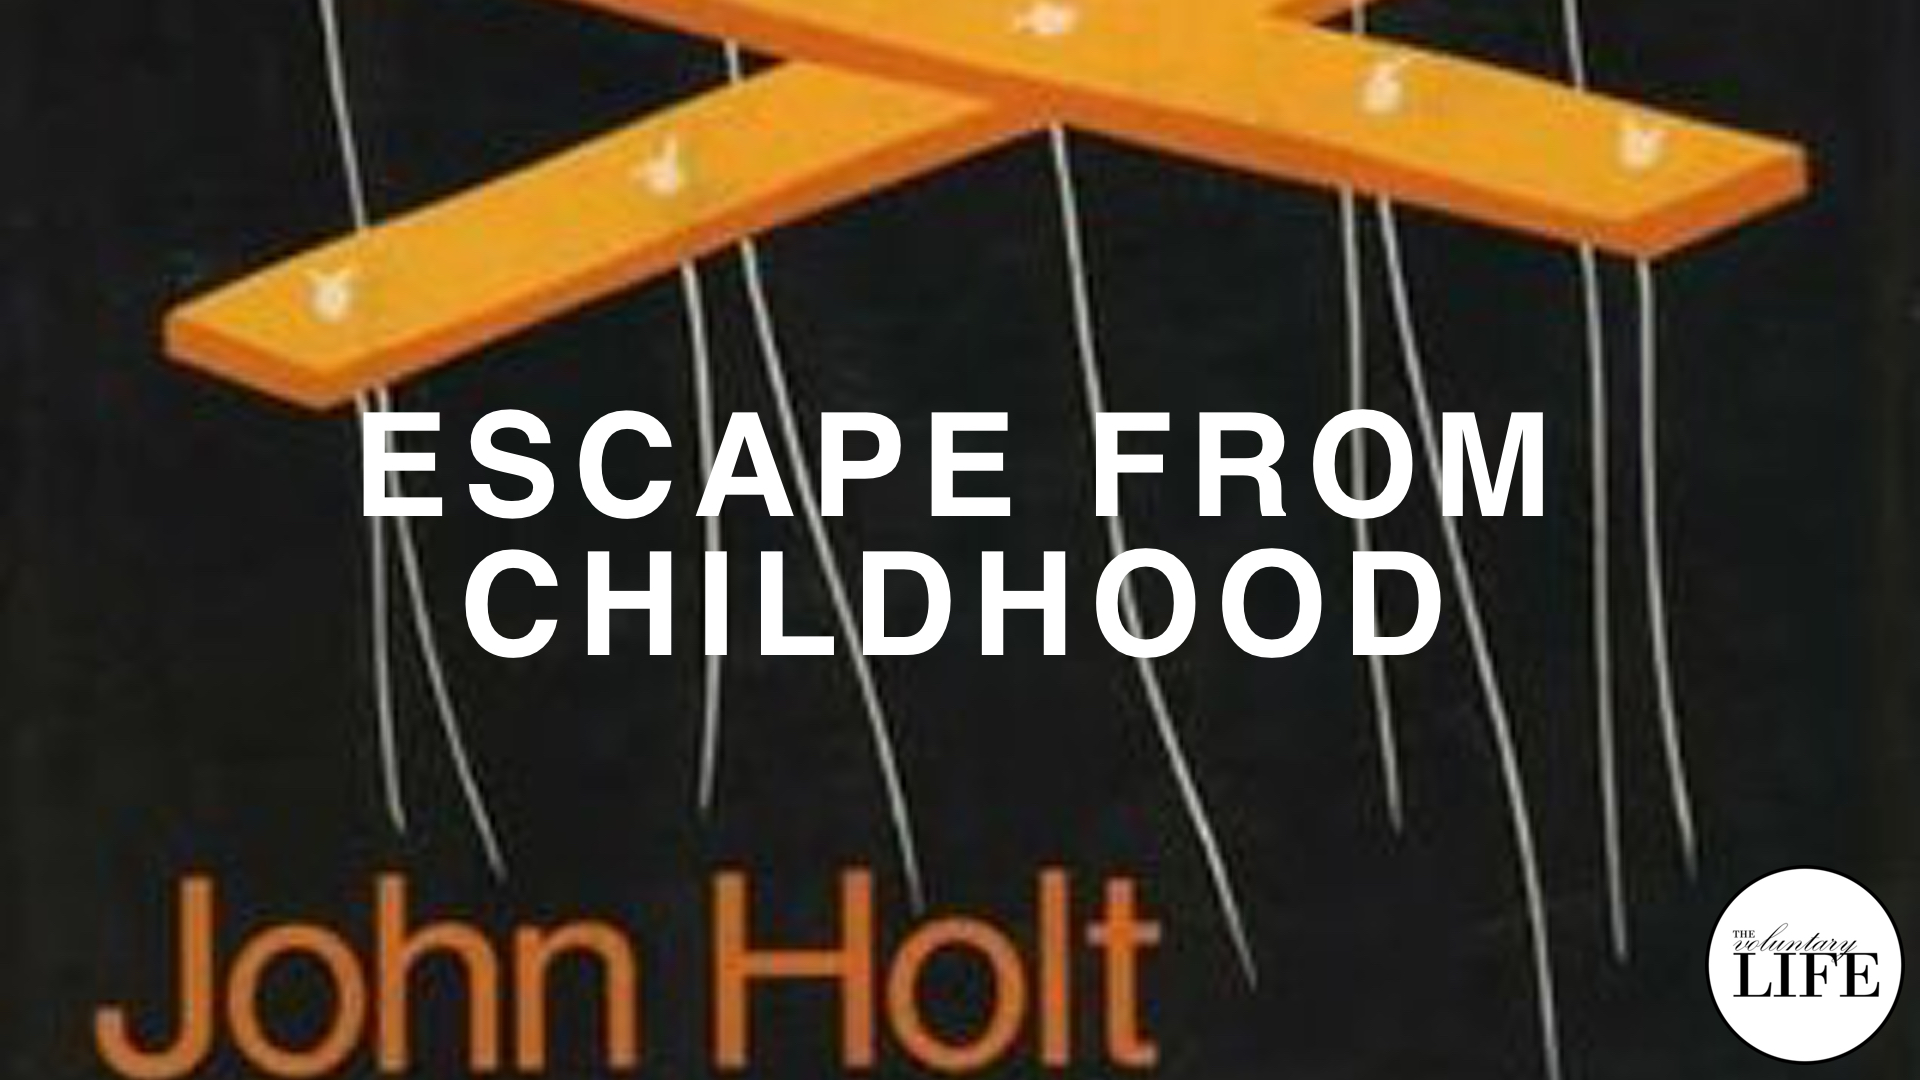 265 A Review Of Escape From Childhood By John Holt